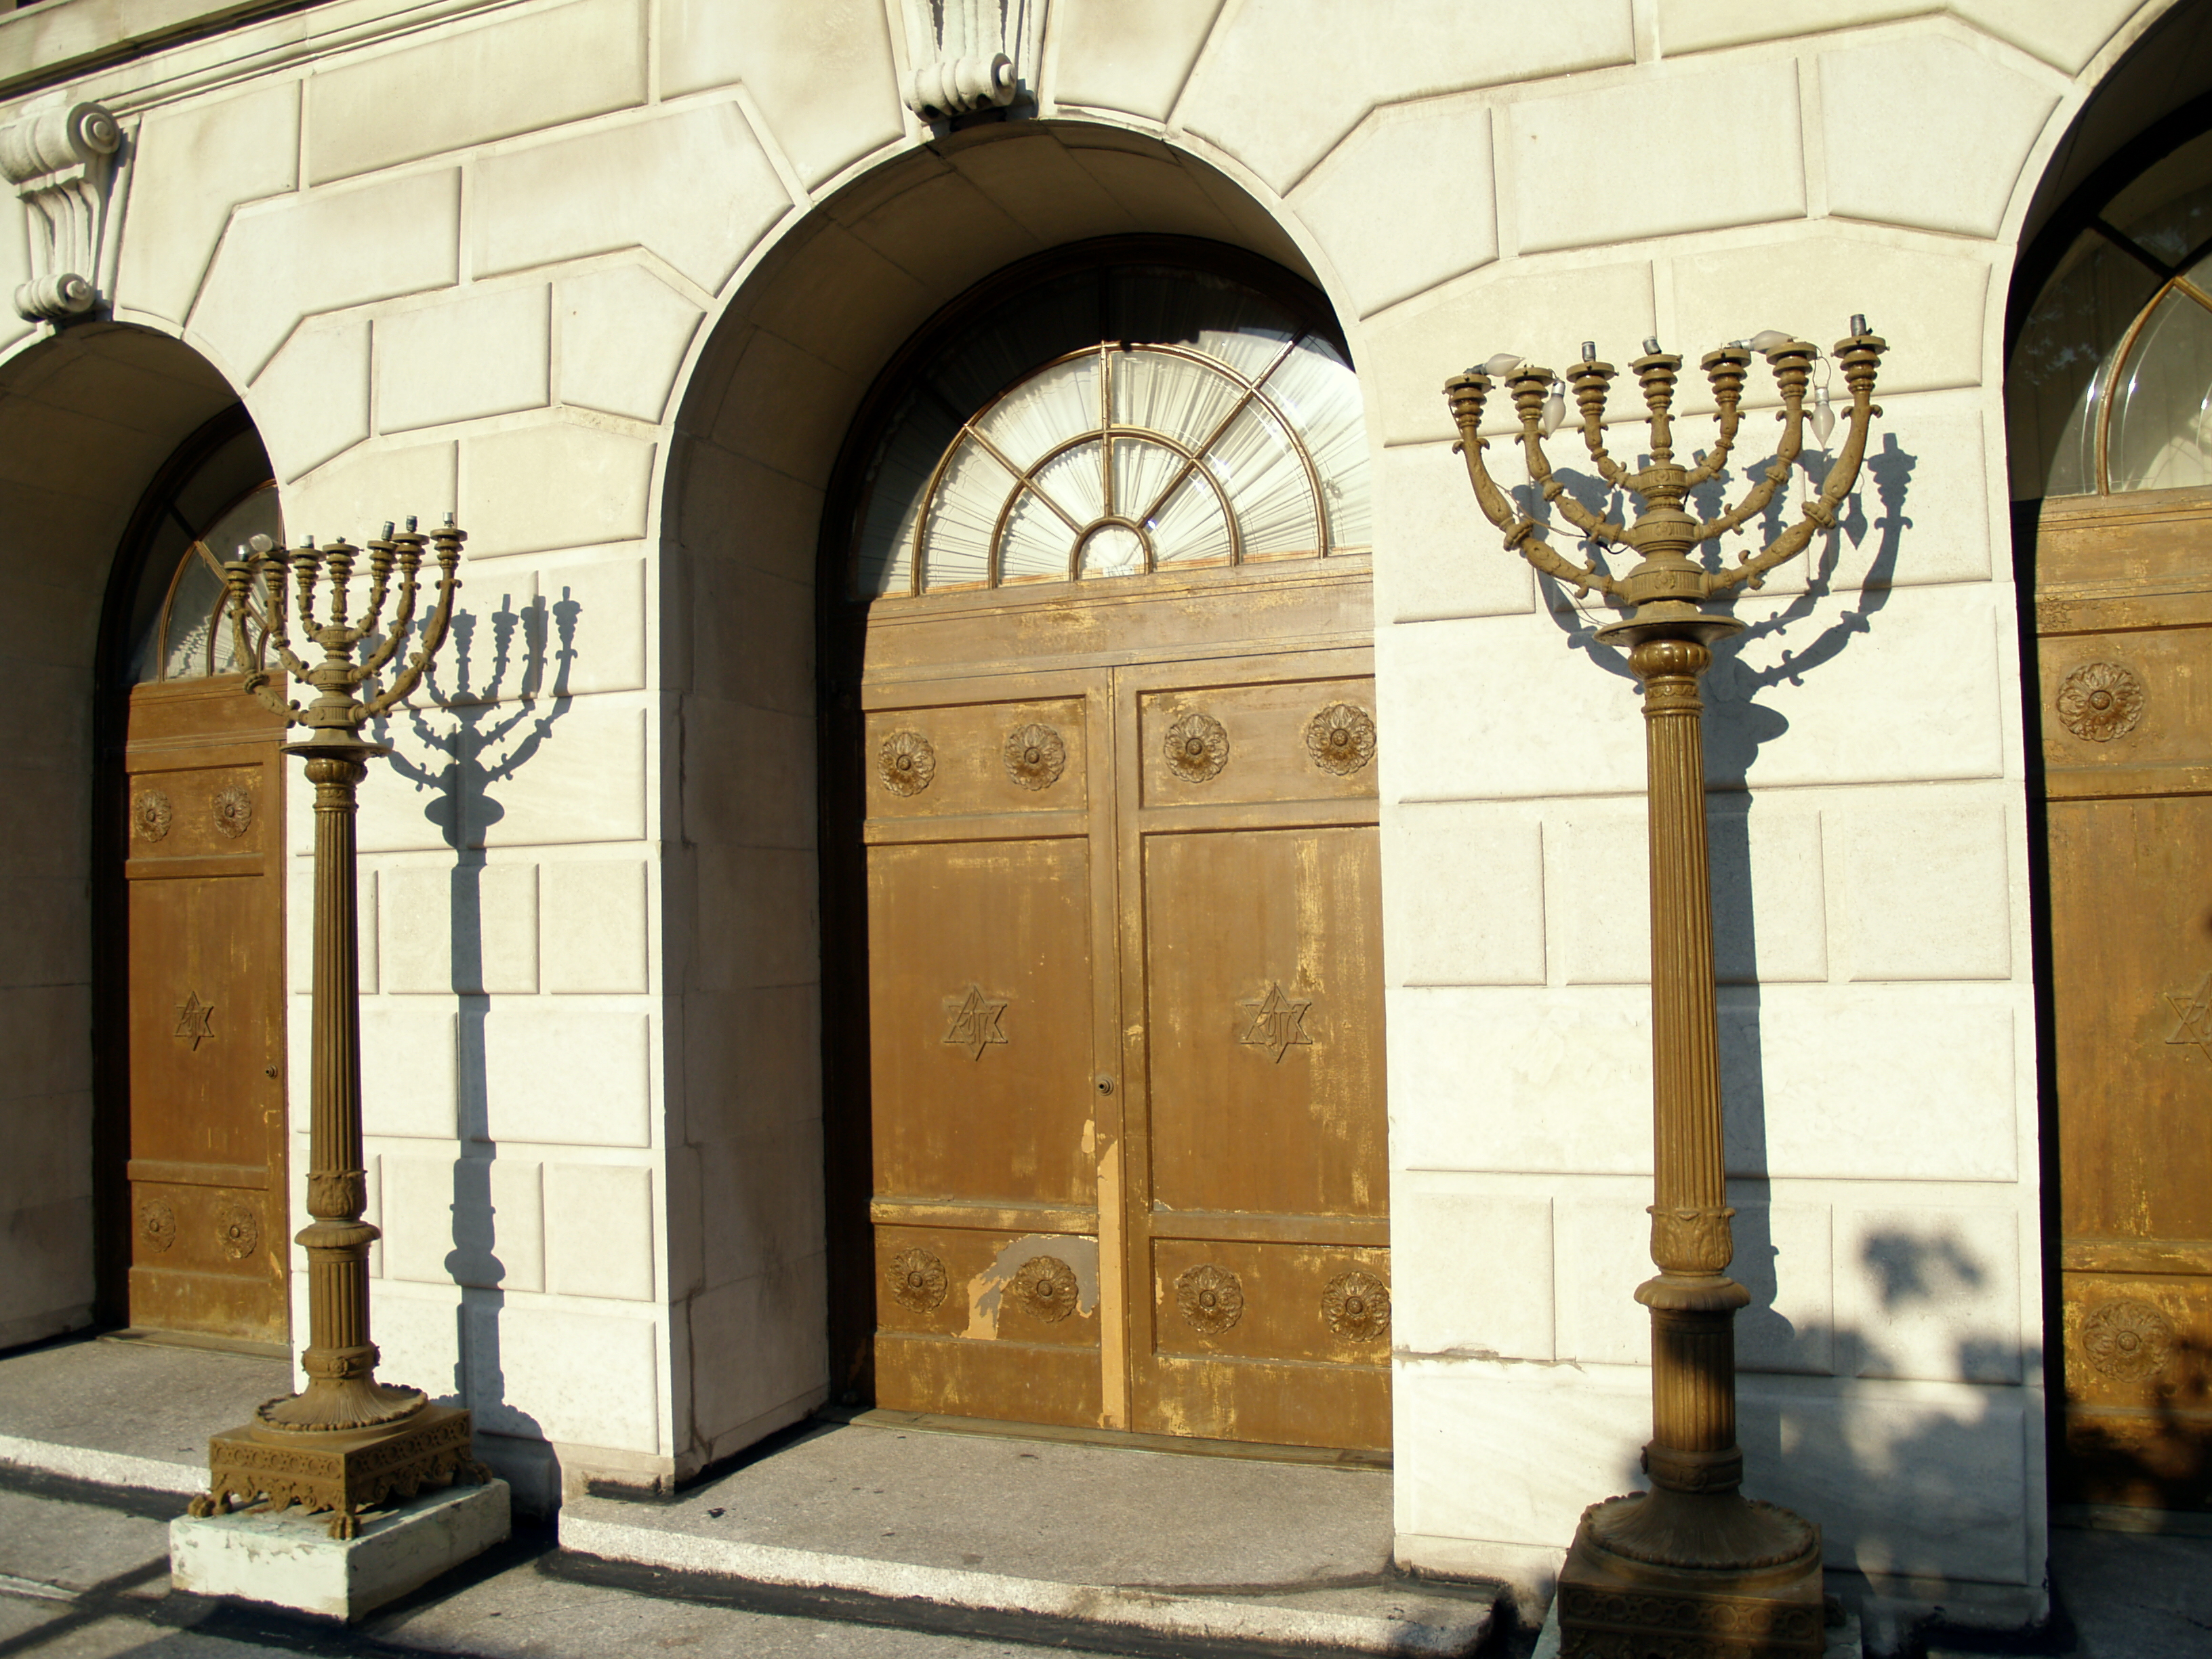 Late 20th-Early 21st century & East Midwood Jewish Center | Religion-wiki | FANDOM powered by Wikia